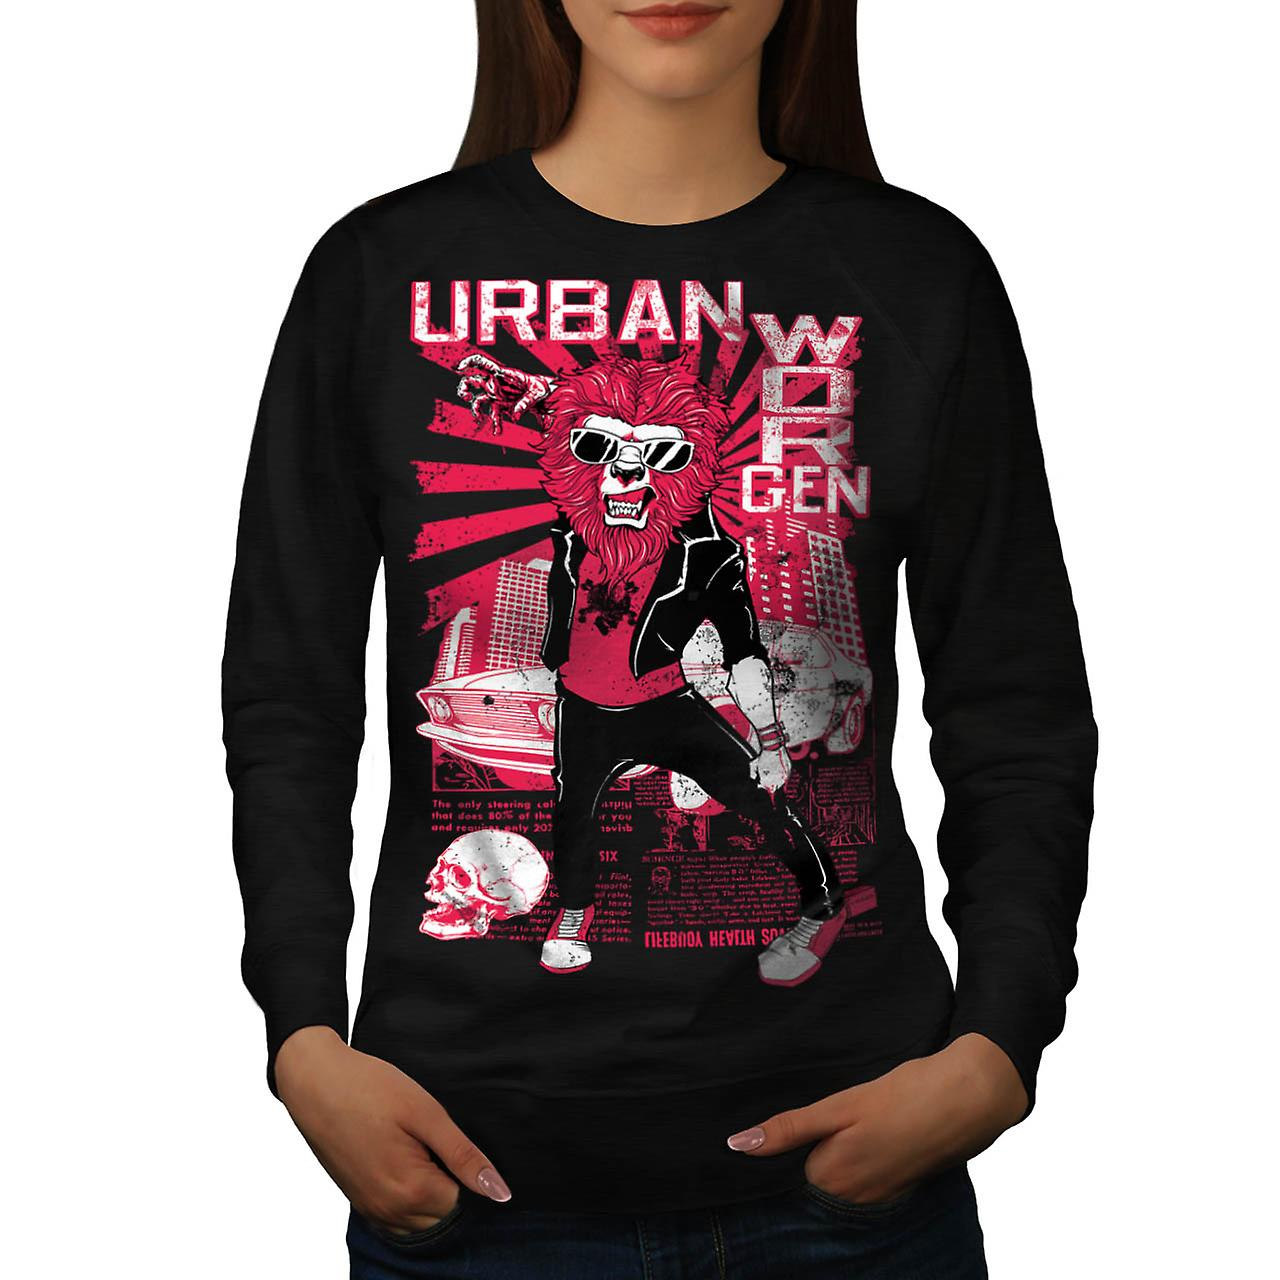 Urban Worgen City Animal Women Black Sweatshirt | Wellcoda